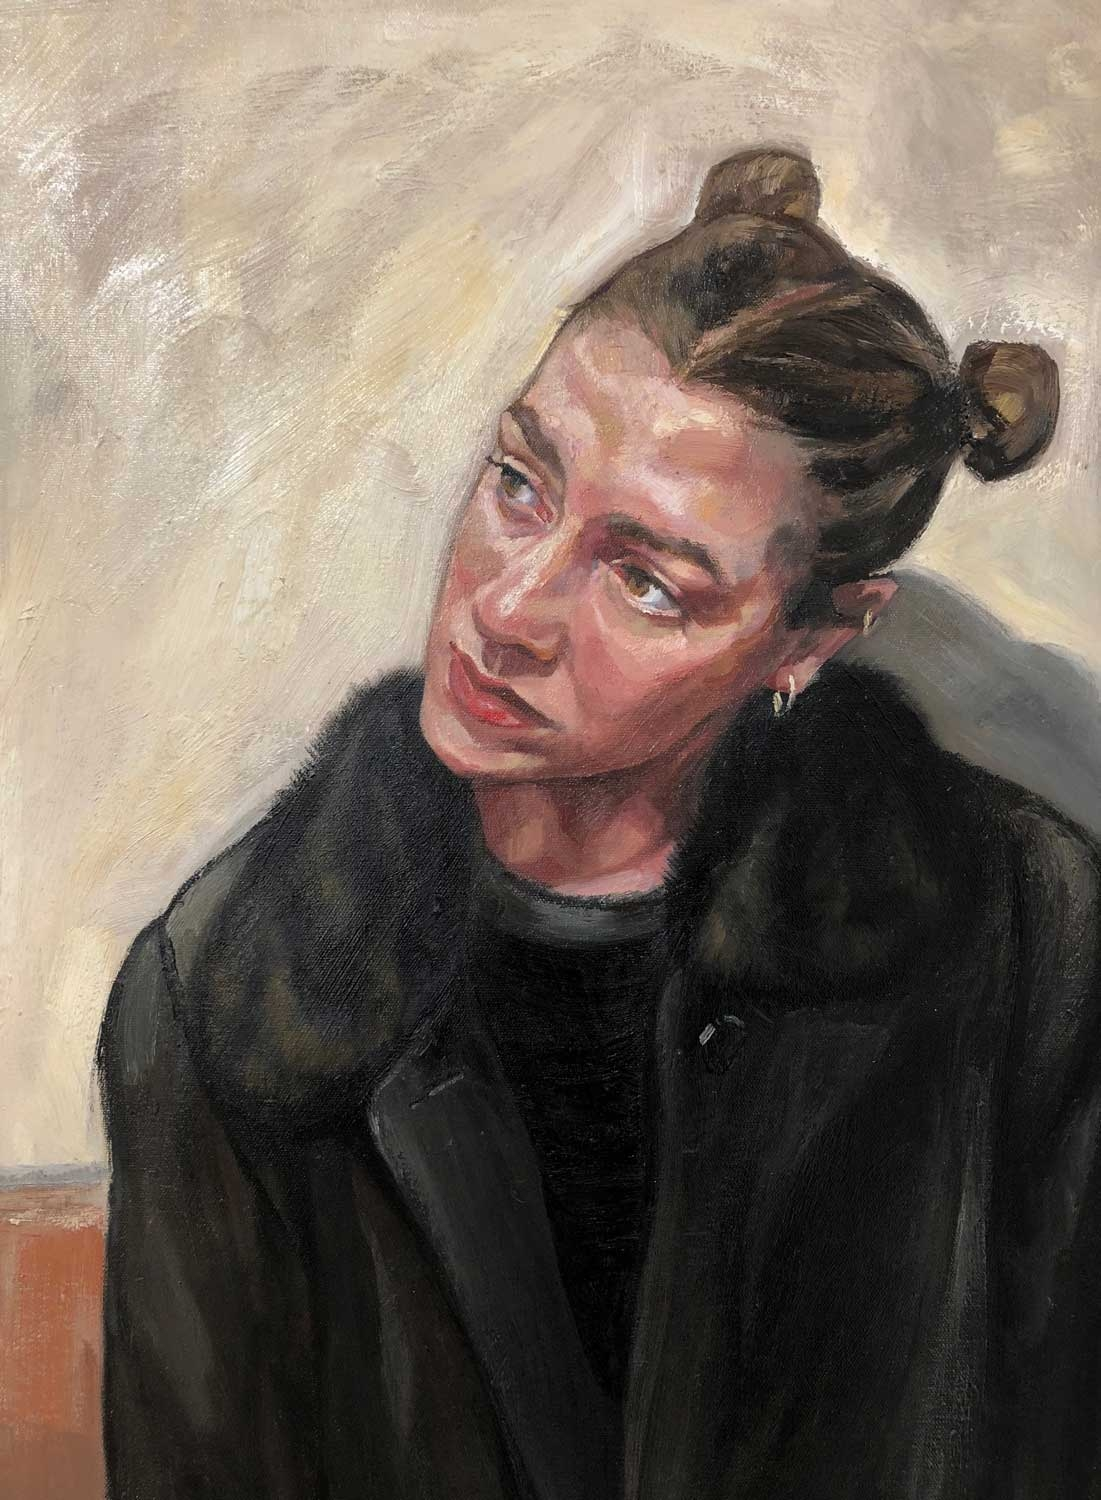 Free Shipping Sites >> Self Portrait | Ania Hobson | Mall Galleries